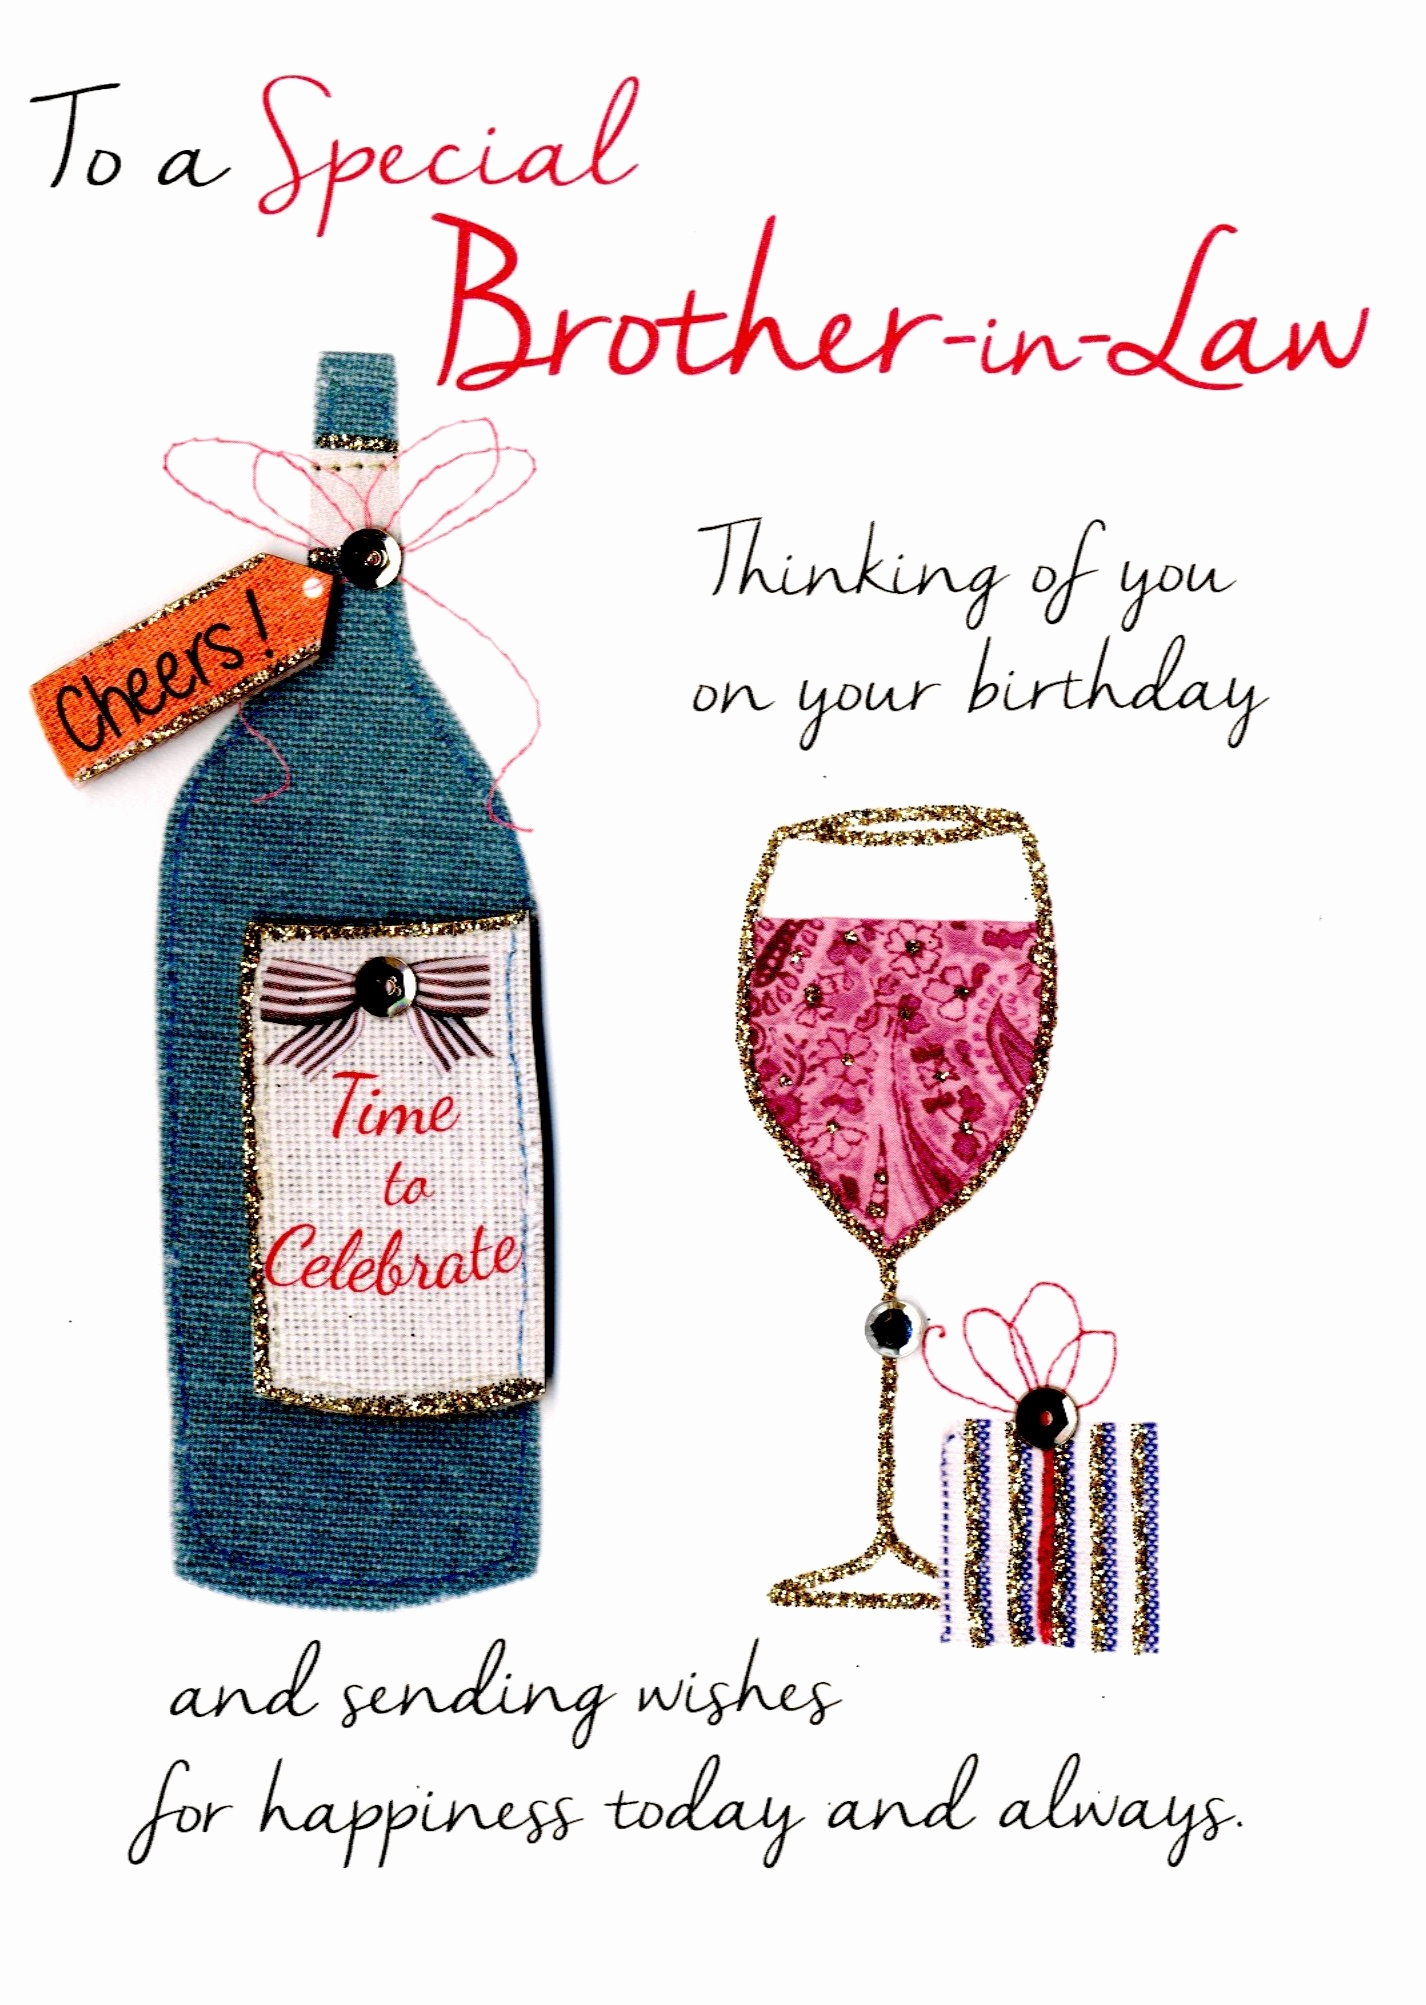 brother in law 50th birthday card ; sister-in-law-50th-birthday-card-luxury-special-brother-in-law-birthday-greeting-card-cards-of-sister-in-law-50th-birthday-card